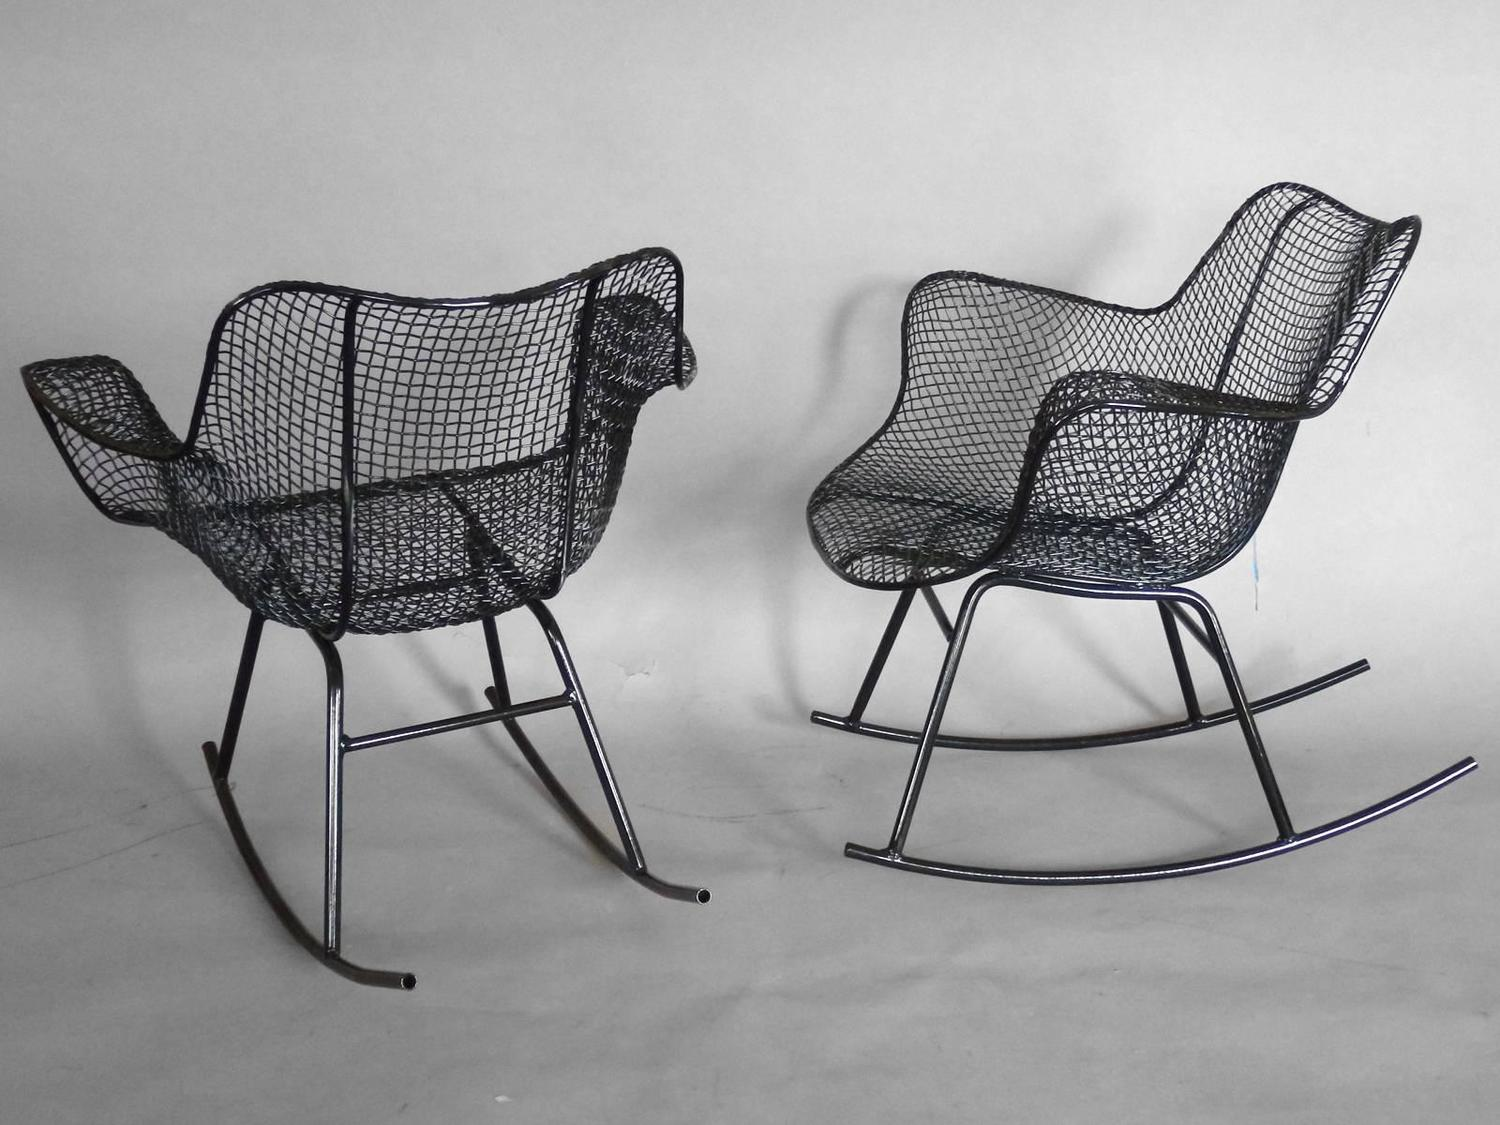 Pair Of Woodard Wrought Iron Rocking Chairs At 1stdibs